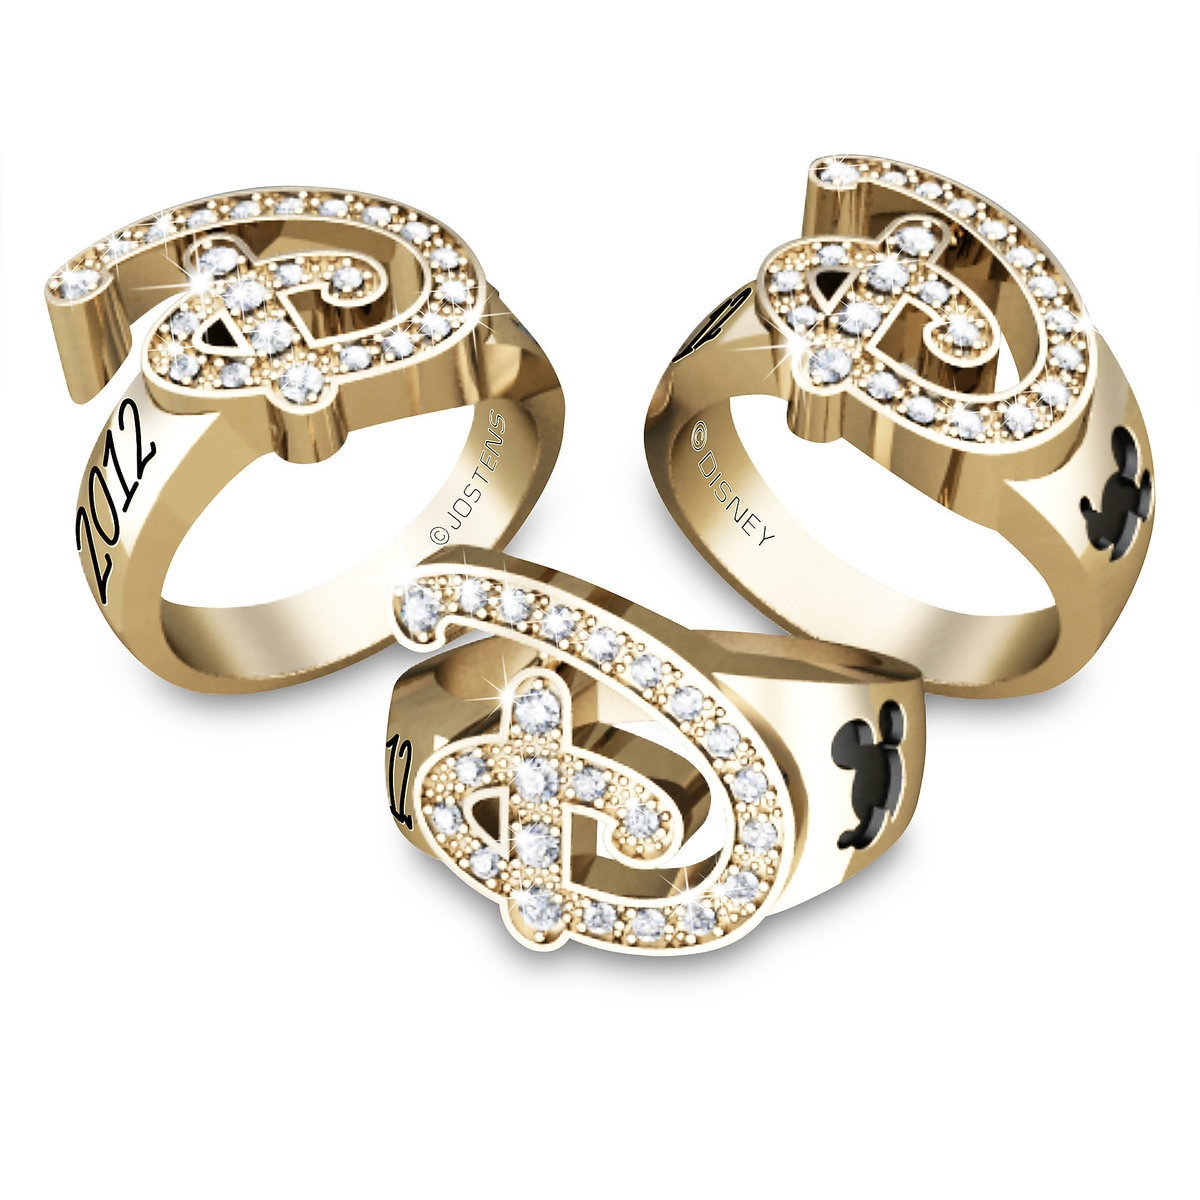 disney diamond ring for women by jostens personalizable - Disney Wedding Ring